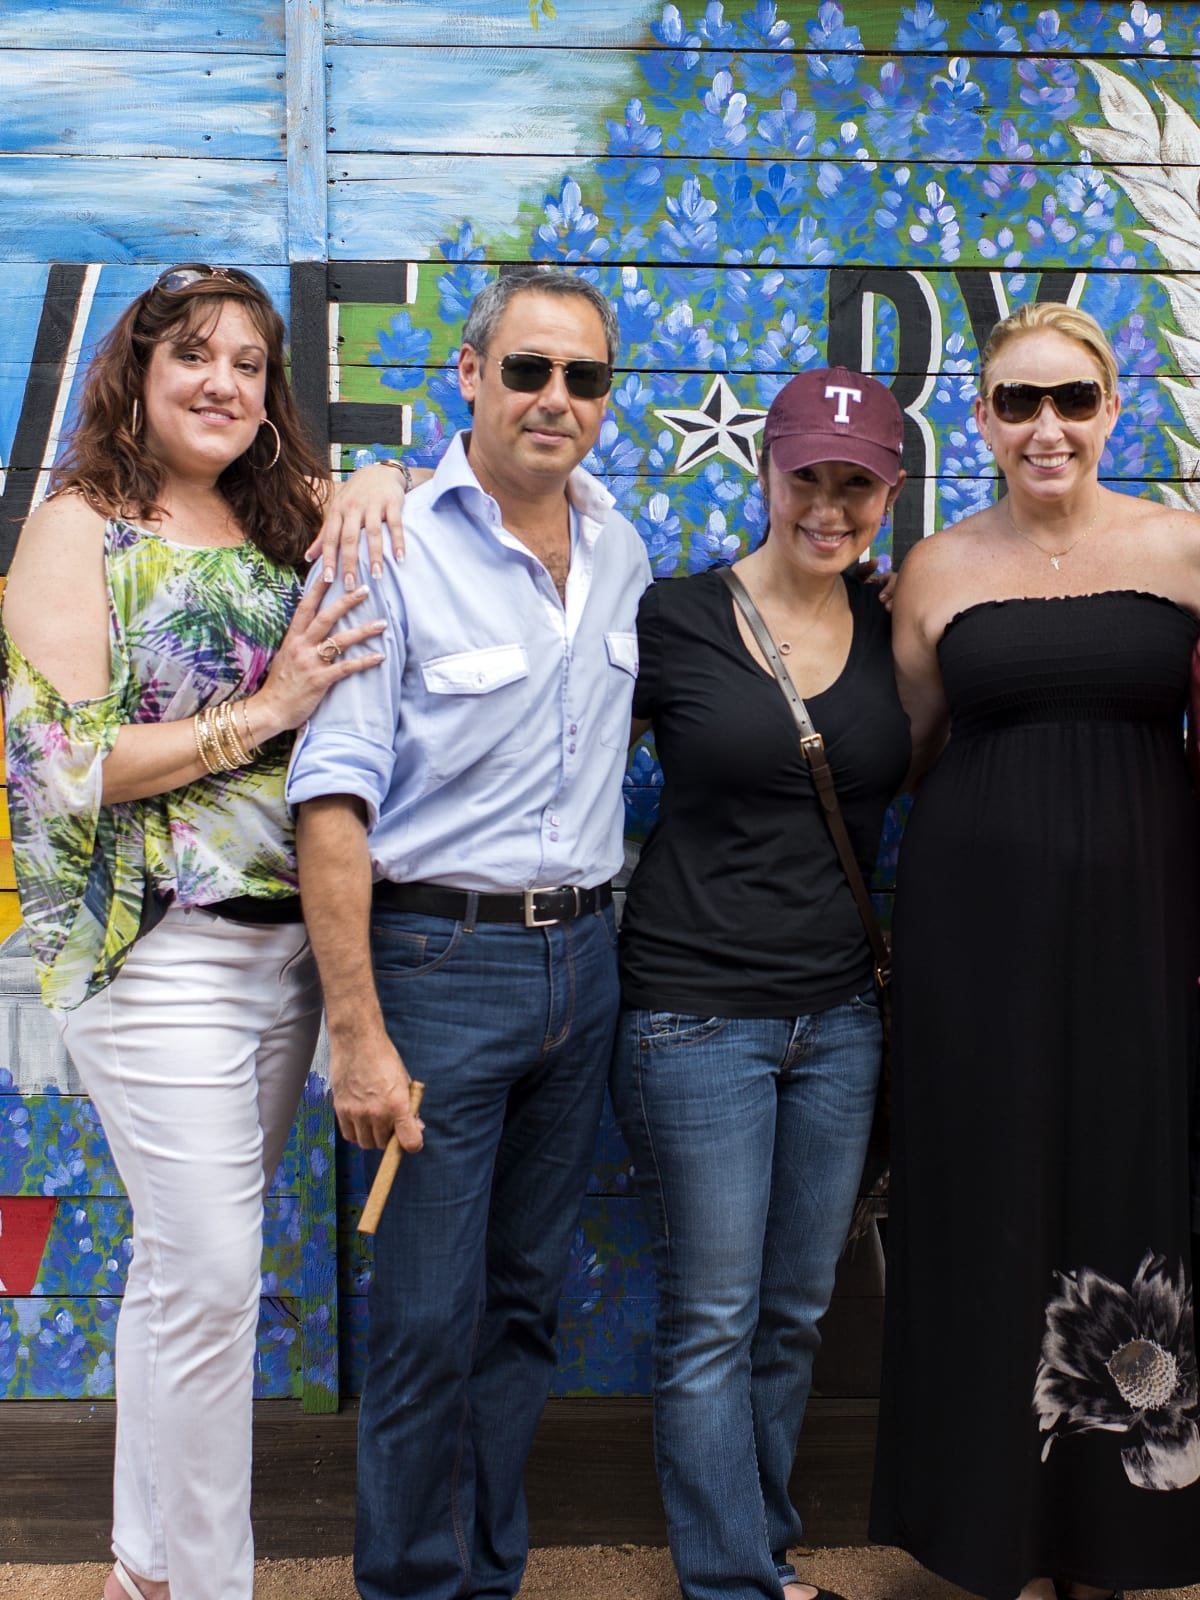 News, Shelby, Revelry party, July 2015, Michelle Hulse, Hector Villarreal, Okwha Brite, Mandy Lou David